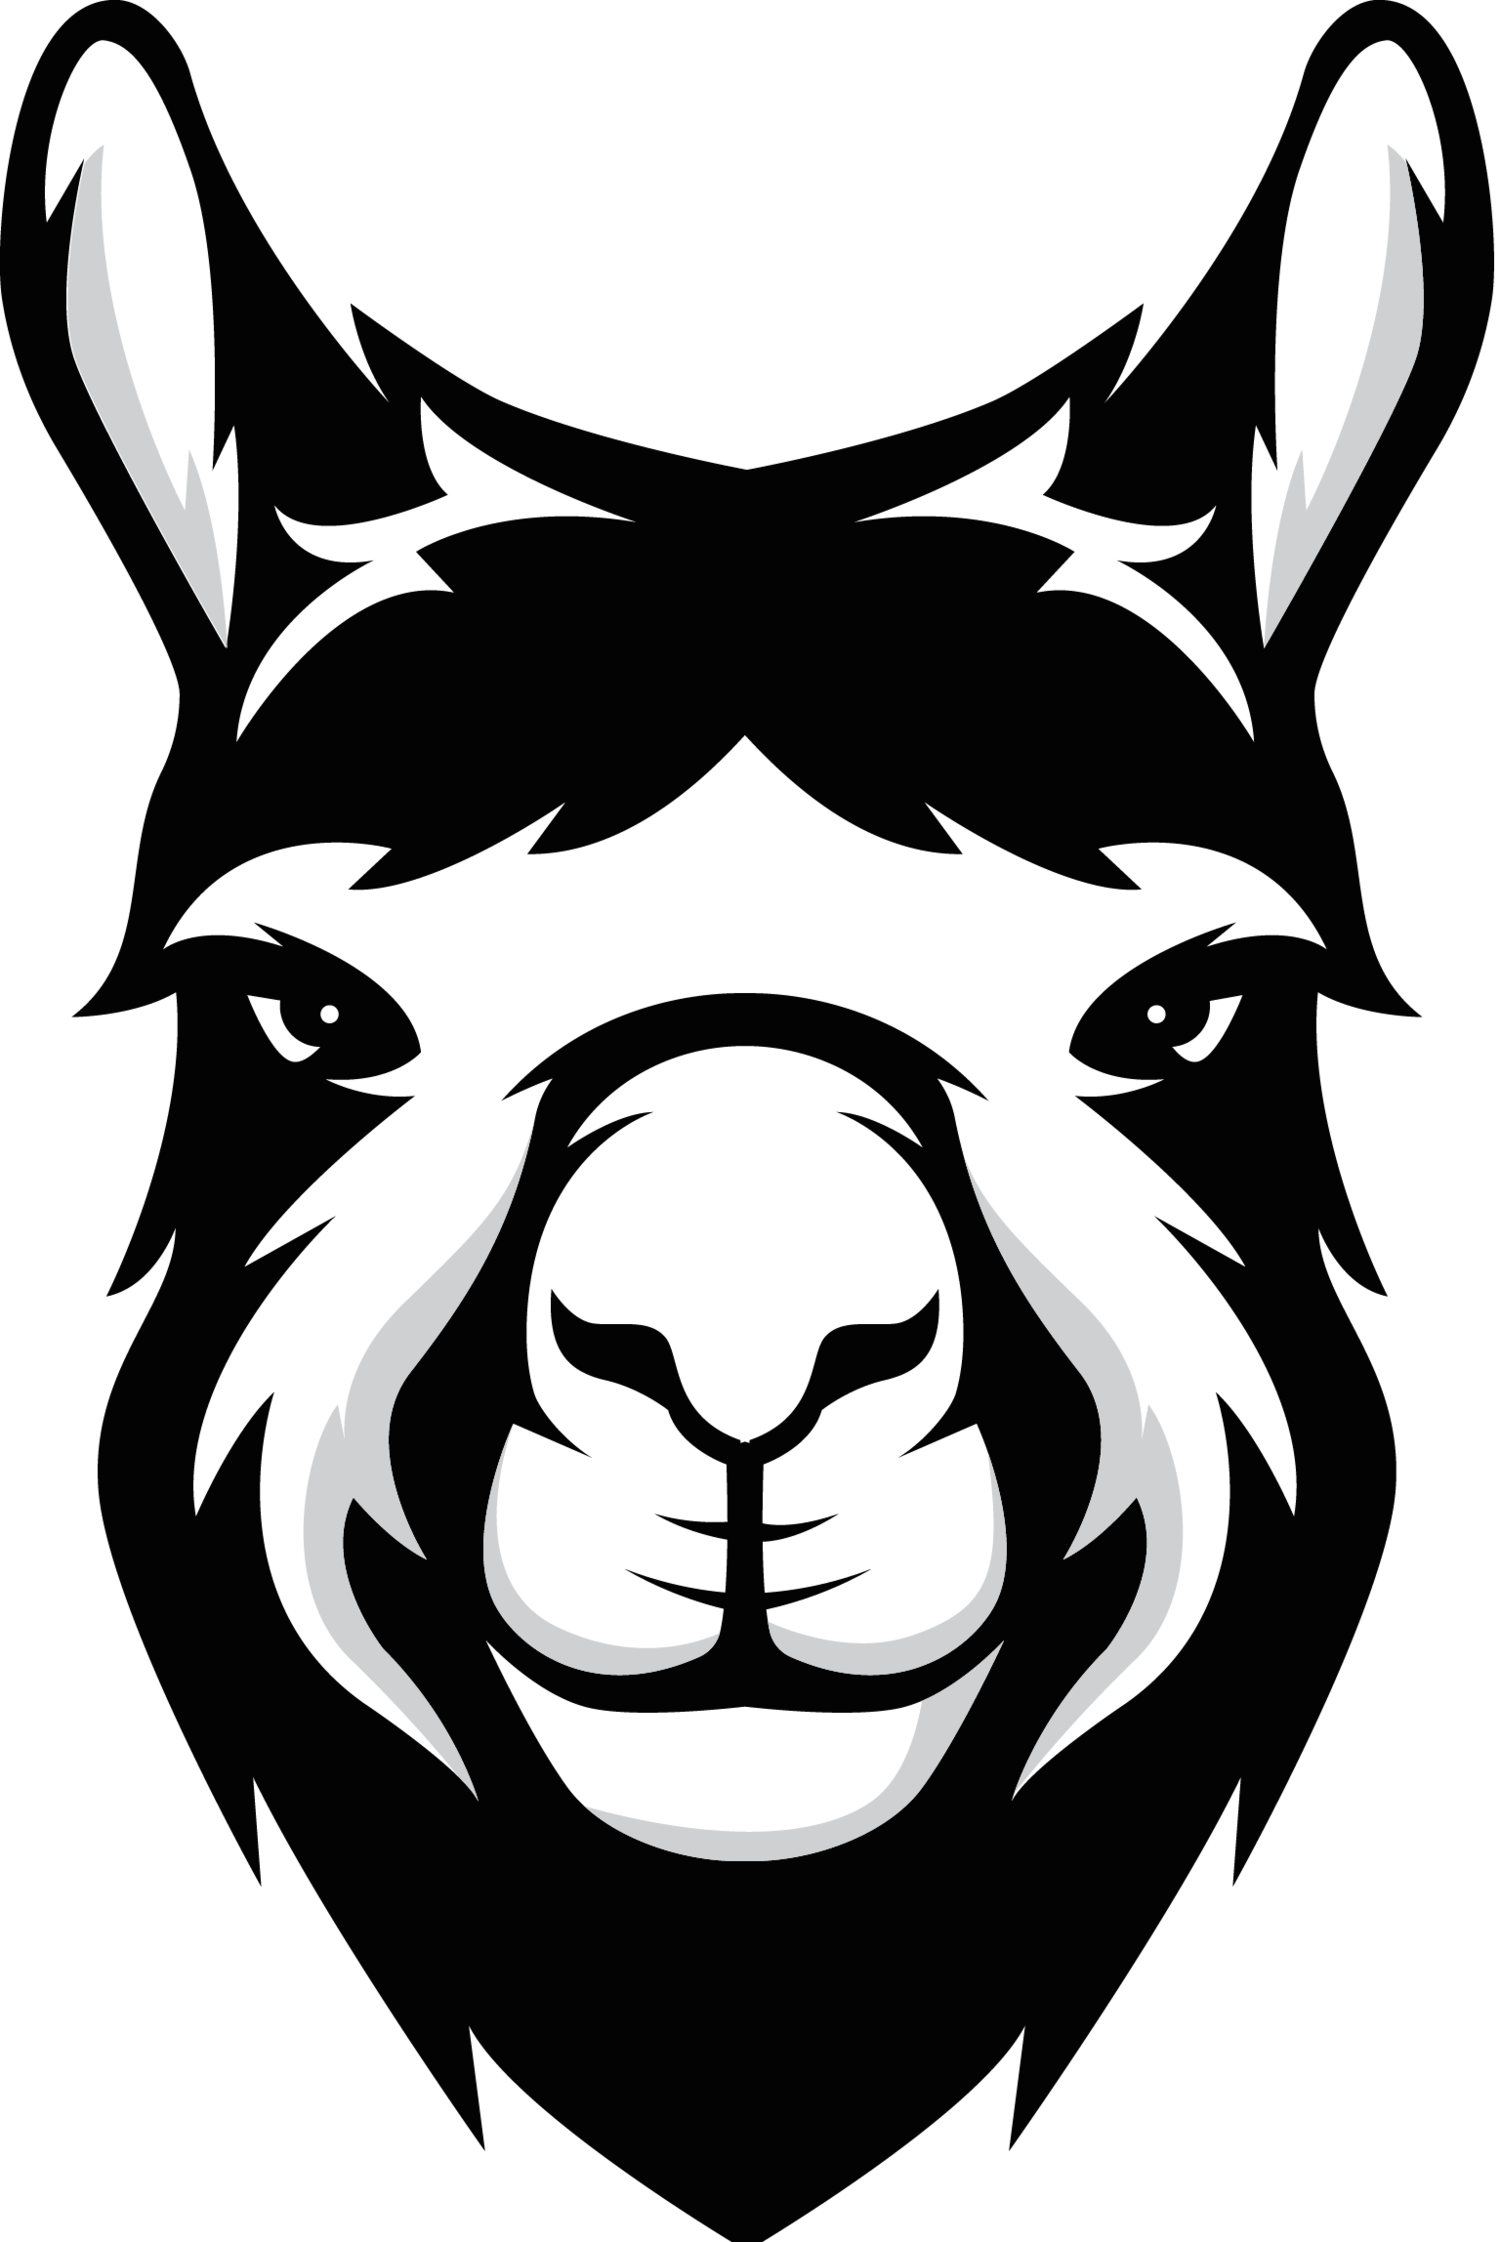 Llama face png black. Alpaca knows logo facepng